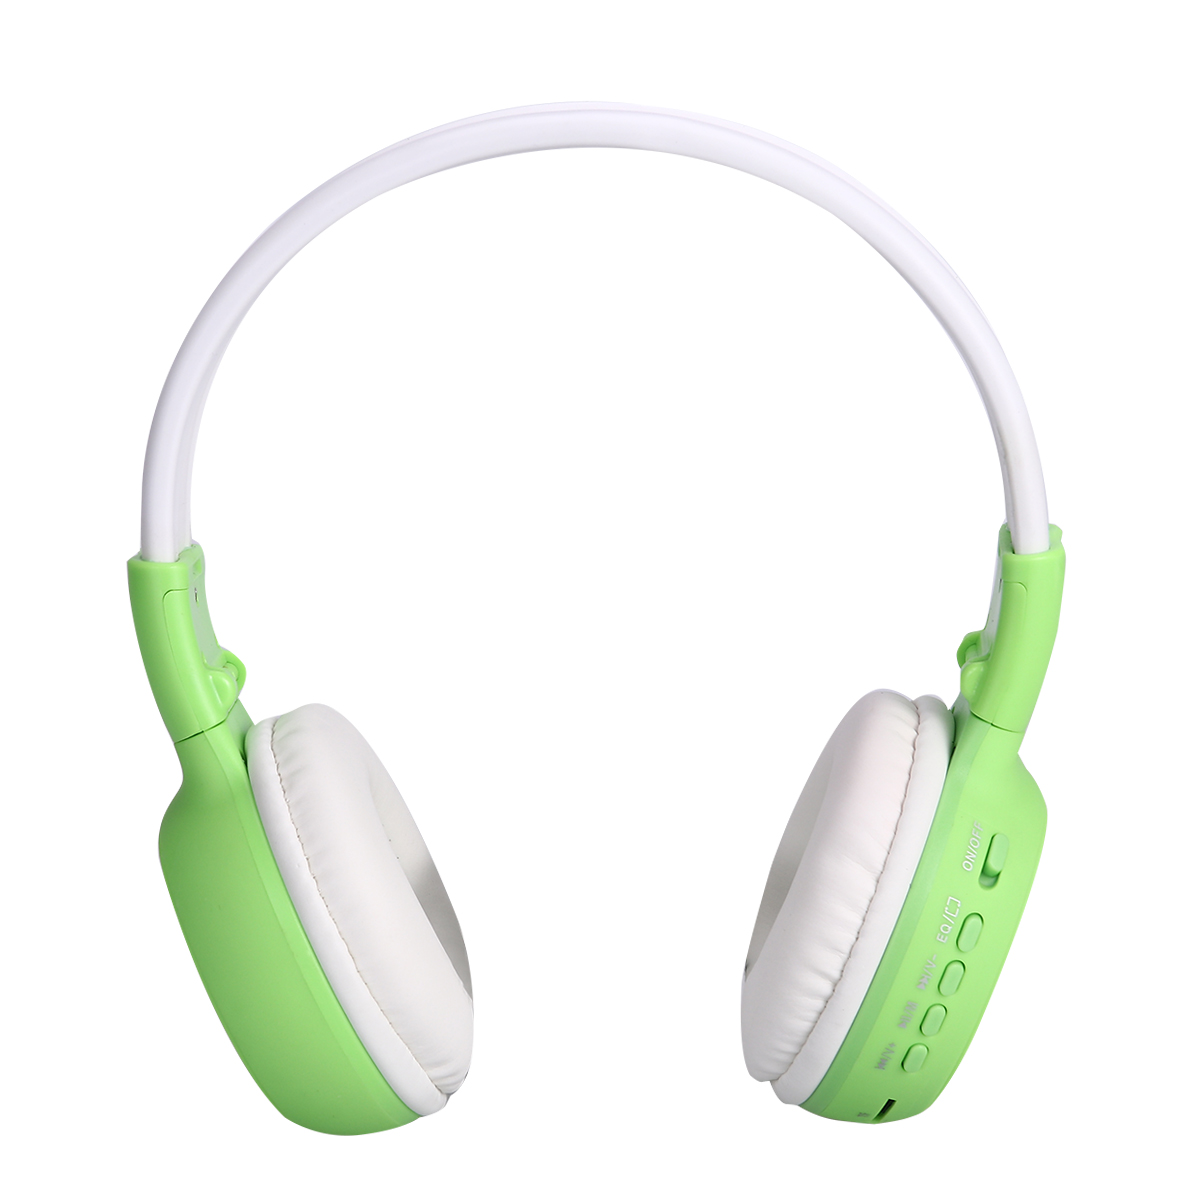 Portable Multifunction Foldable Bluetooth Wireless Card Headset Over Ear Headphones with Microphone merrisport bluetooth headphones with microphone over ear foldable portable music bass headsets for iphone htc cellphones laptop